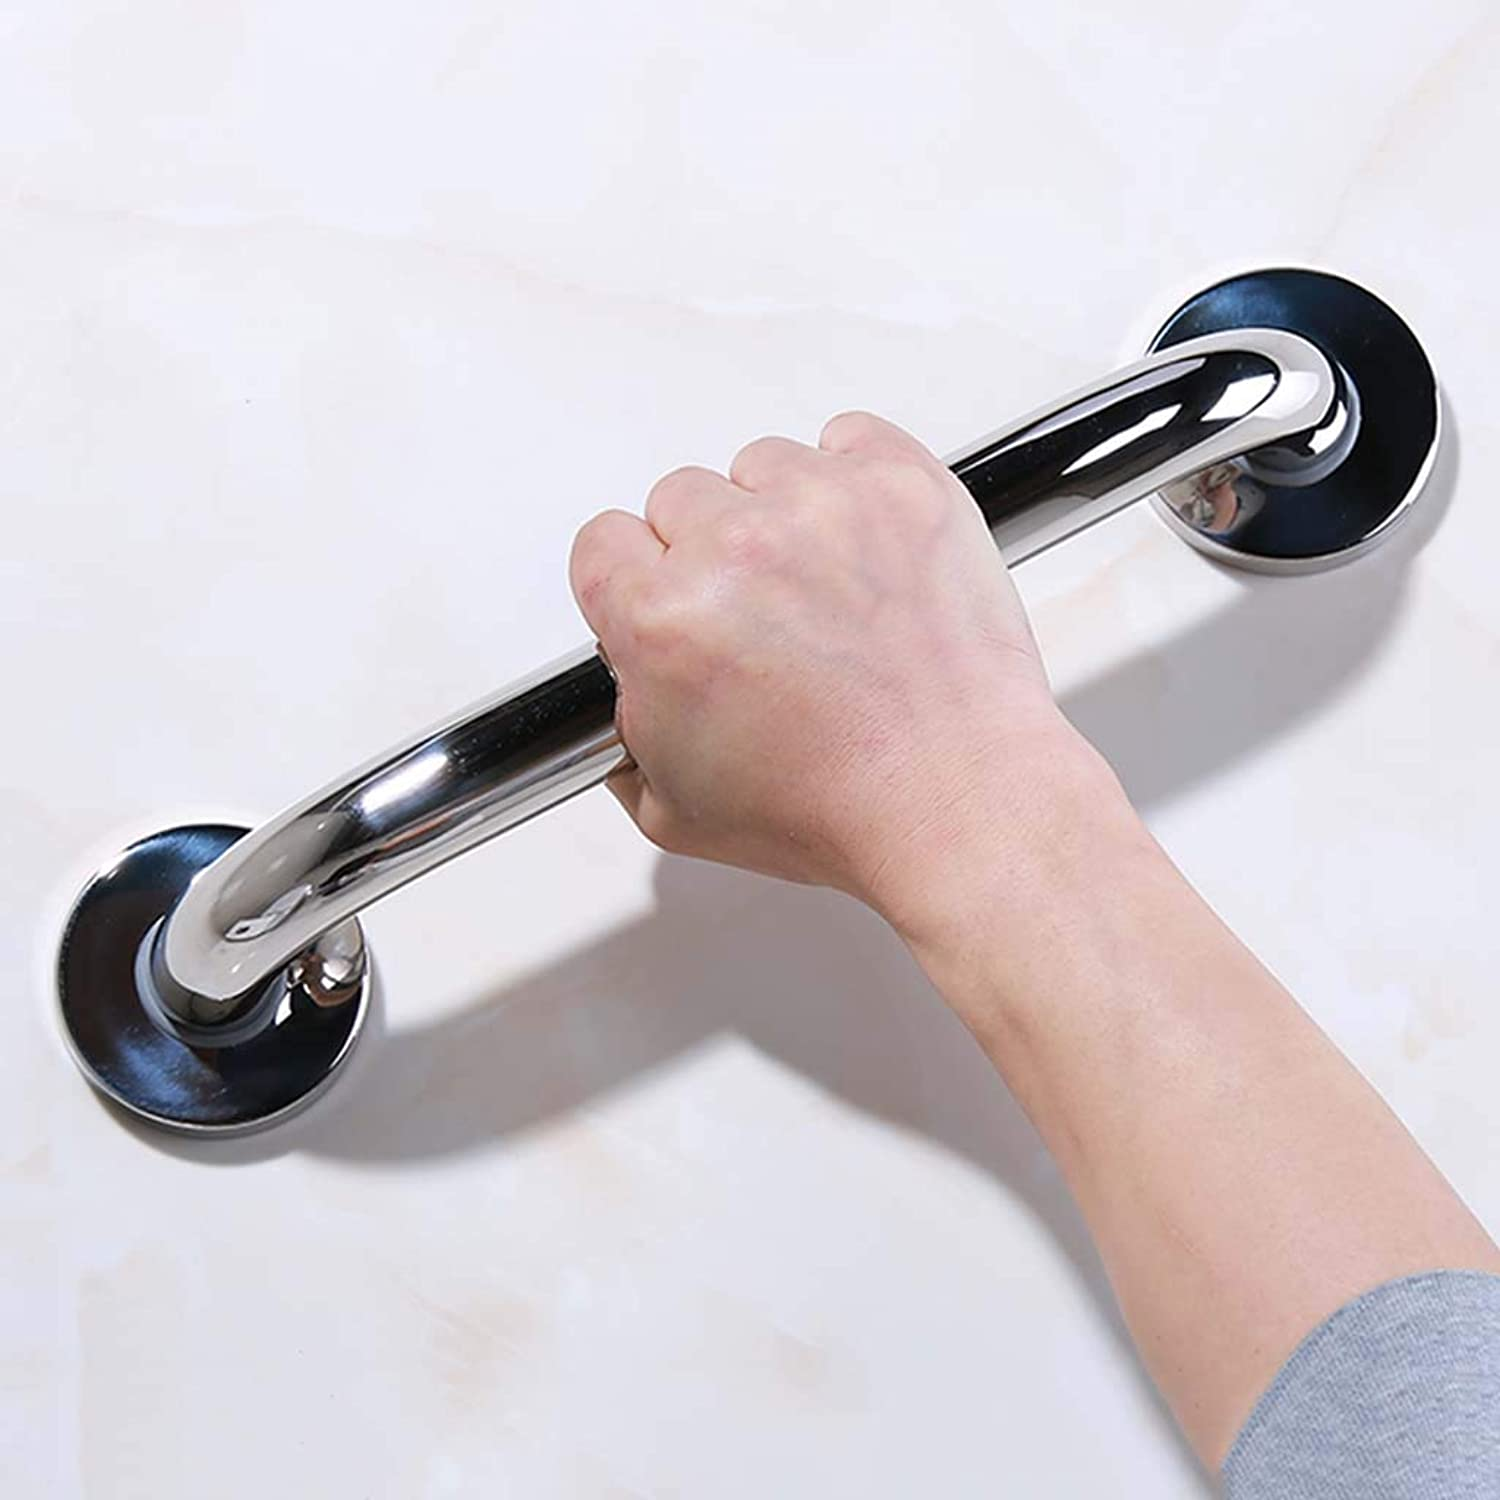 Bathroom handrail 304 Stainless Steel Polished Old Non-Slip Non-Slip handrail (58cm)